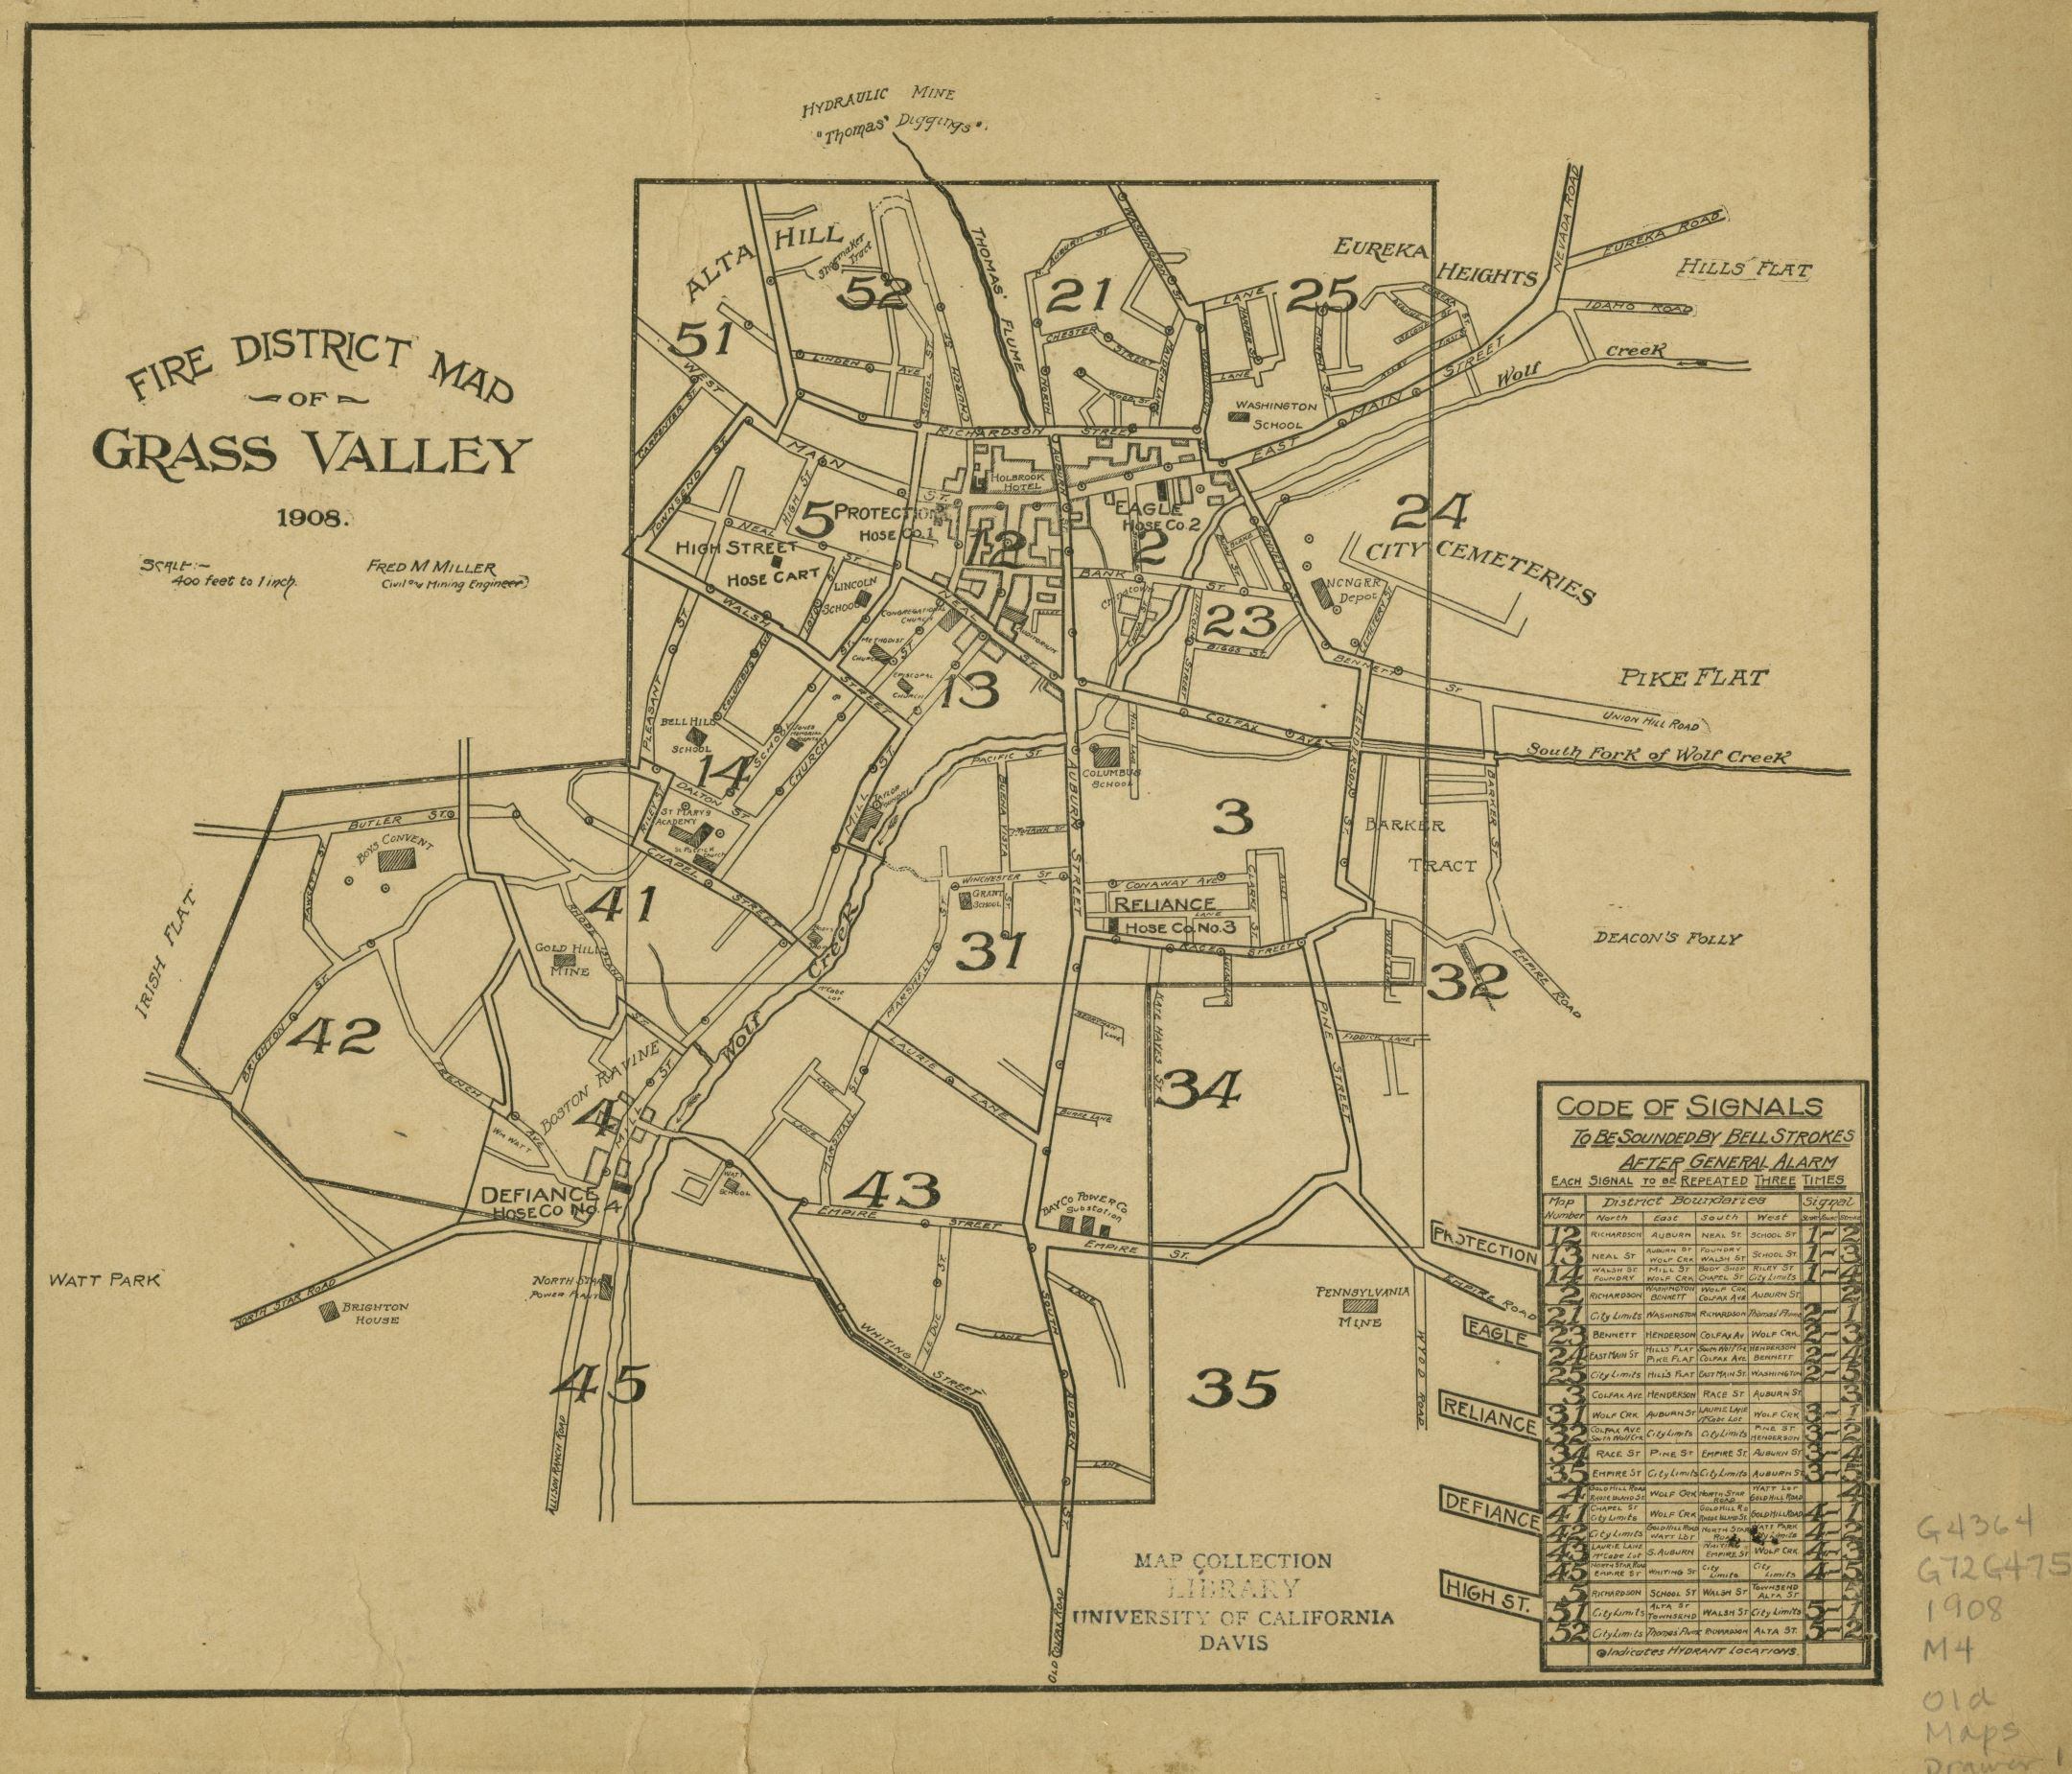 Grass Valley Fire Districts Map from 1908